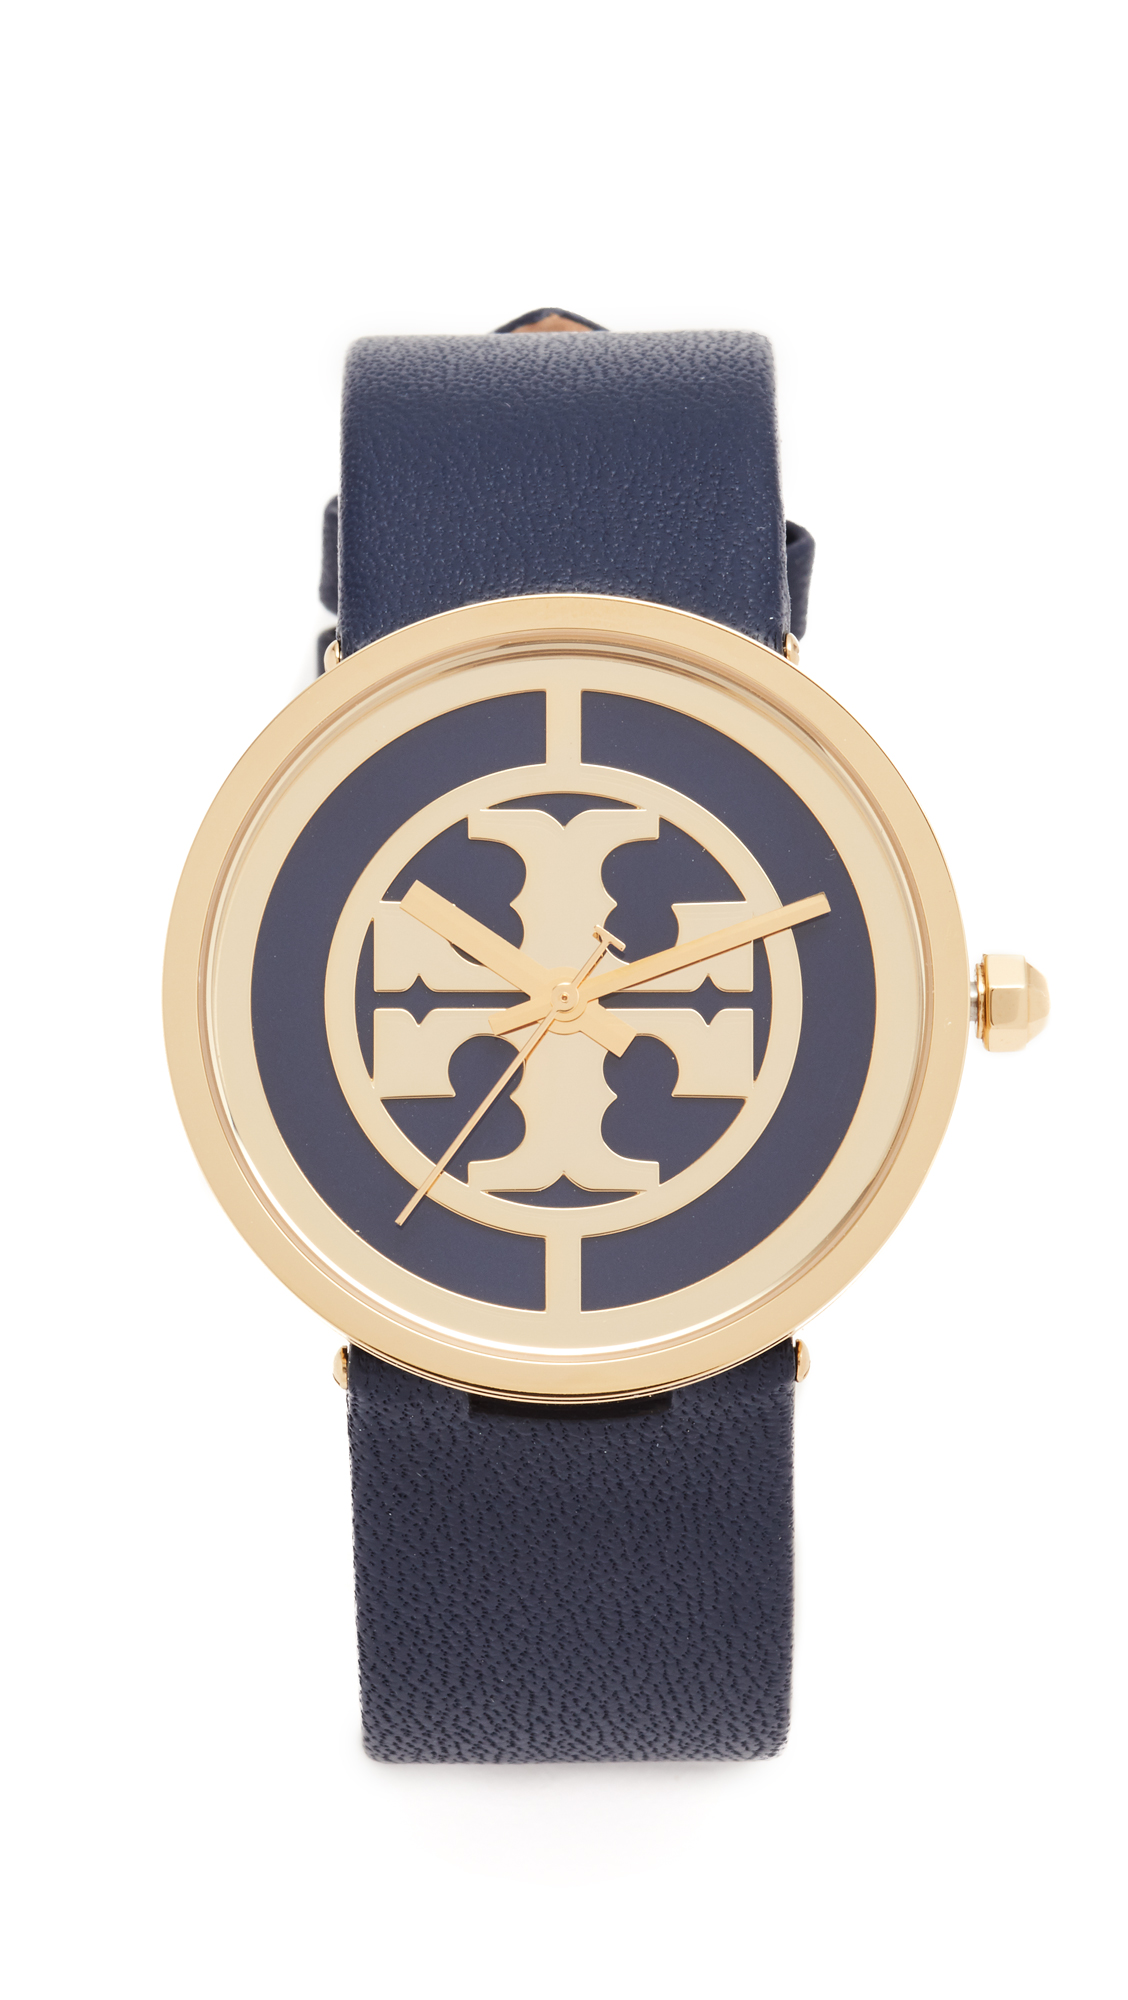 Tory Burch The Reva Leather Watch - Gold/Navy